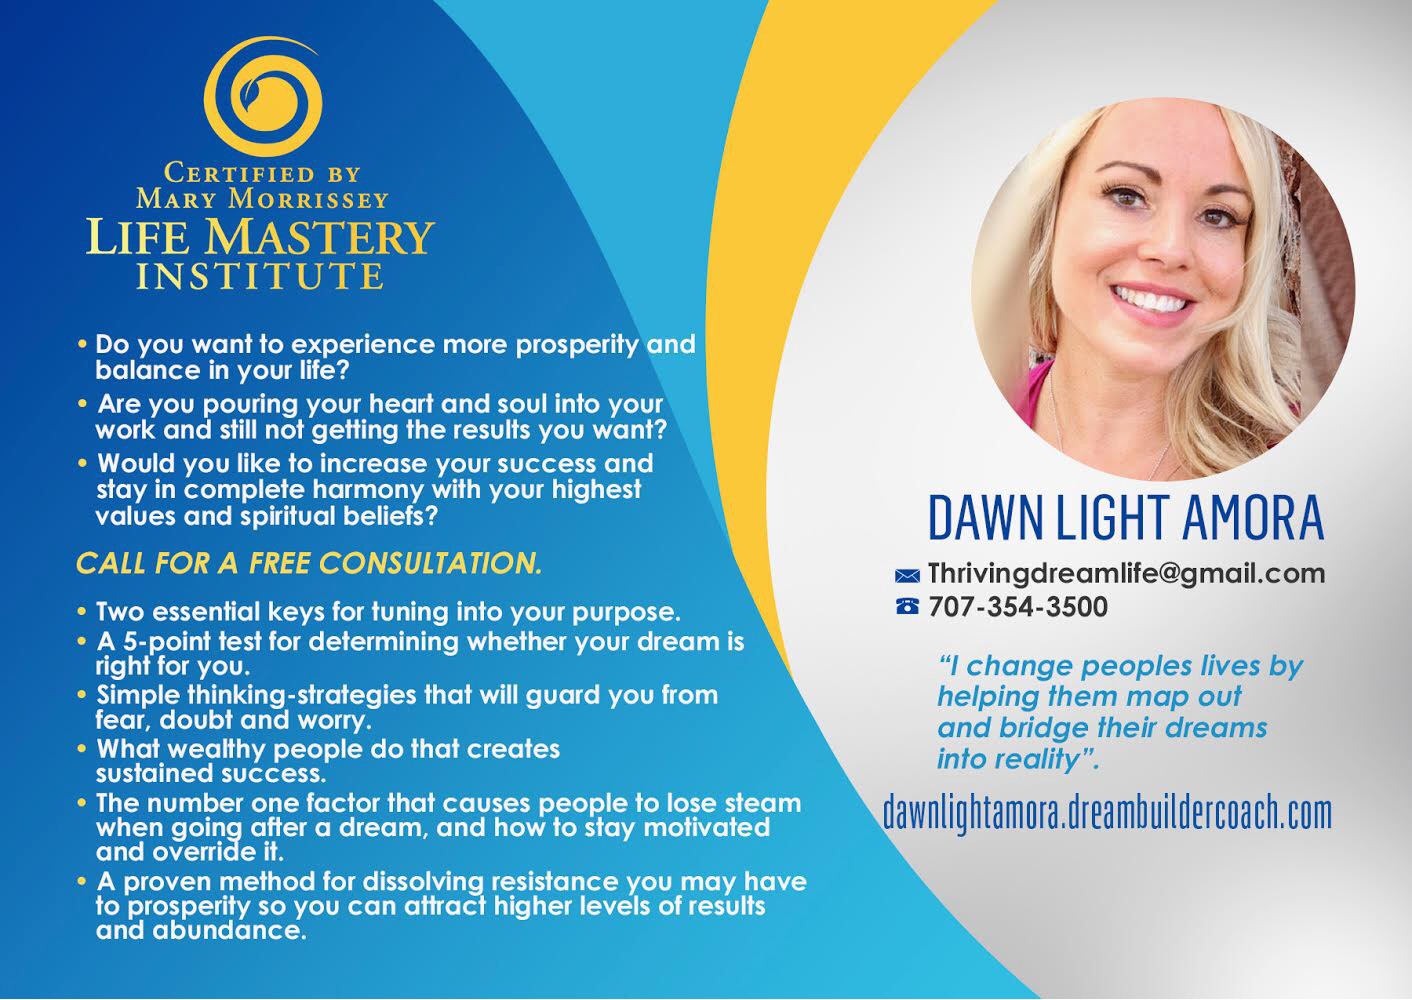 Dawn Light Amora: Love and Life Purpose Coach